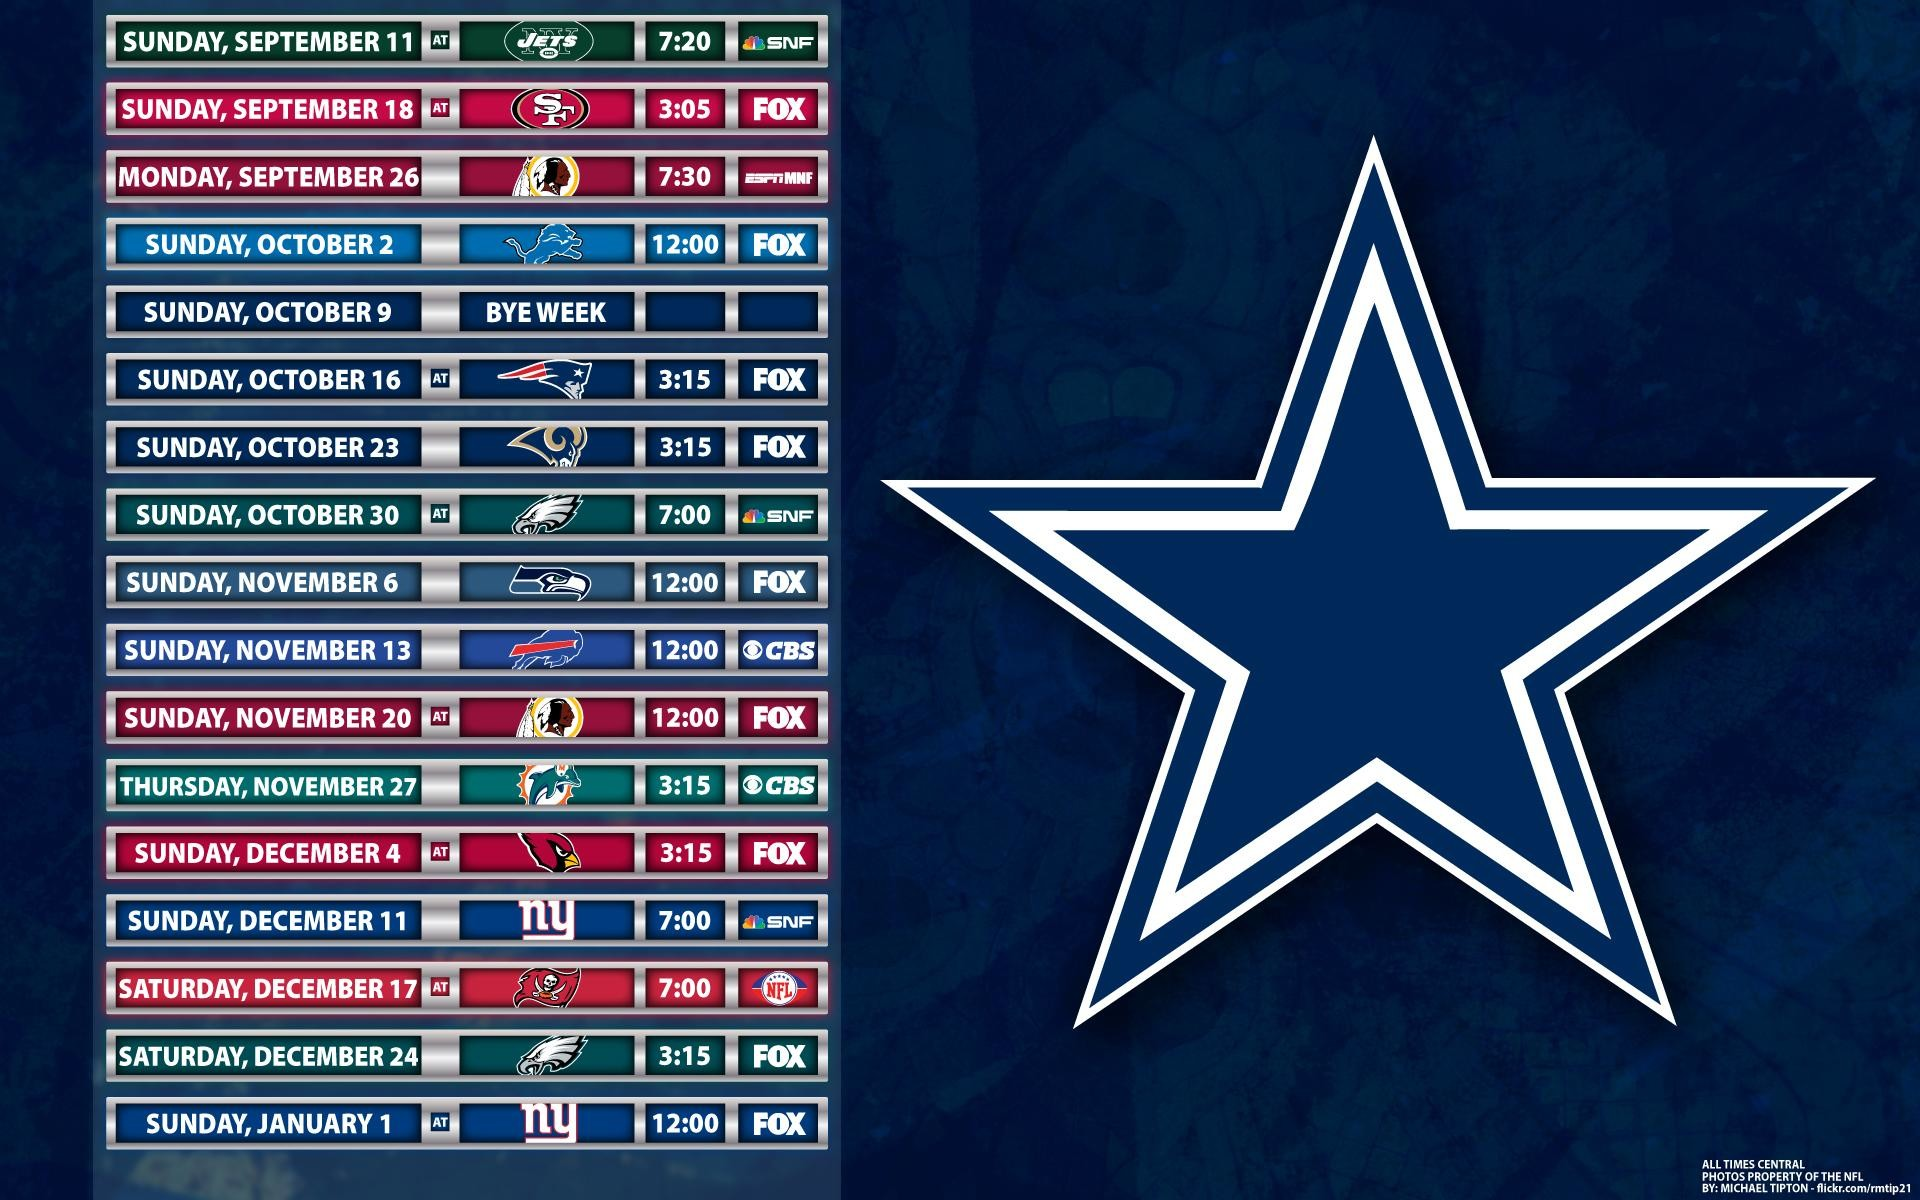 1920x1200 dallas cowboys images wallpapers #566581